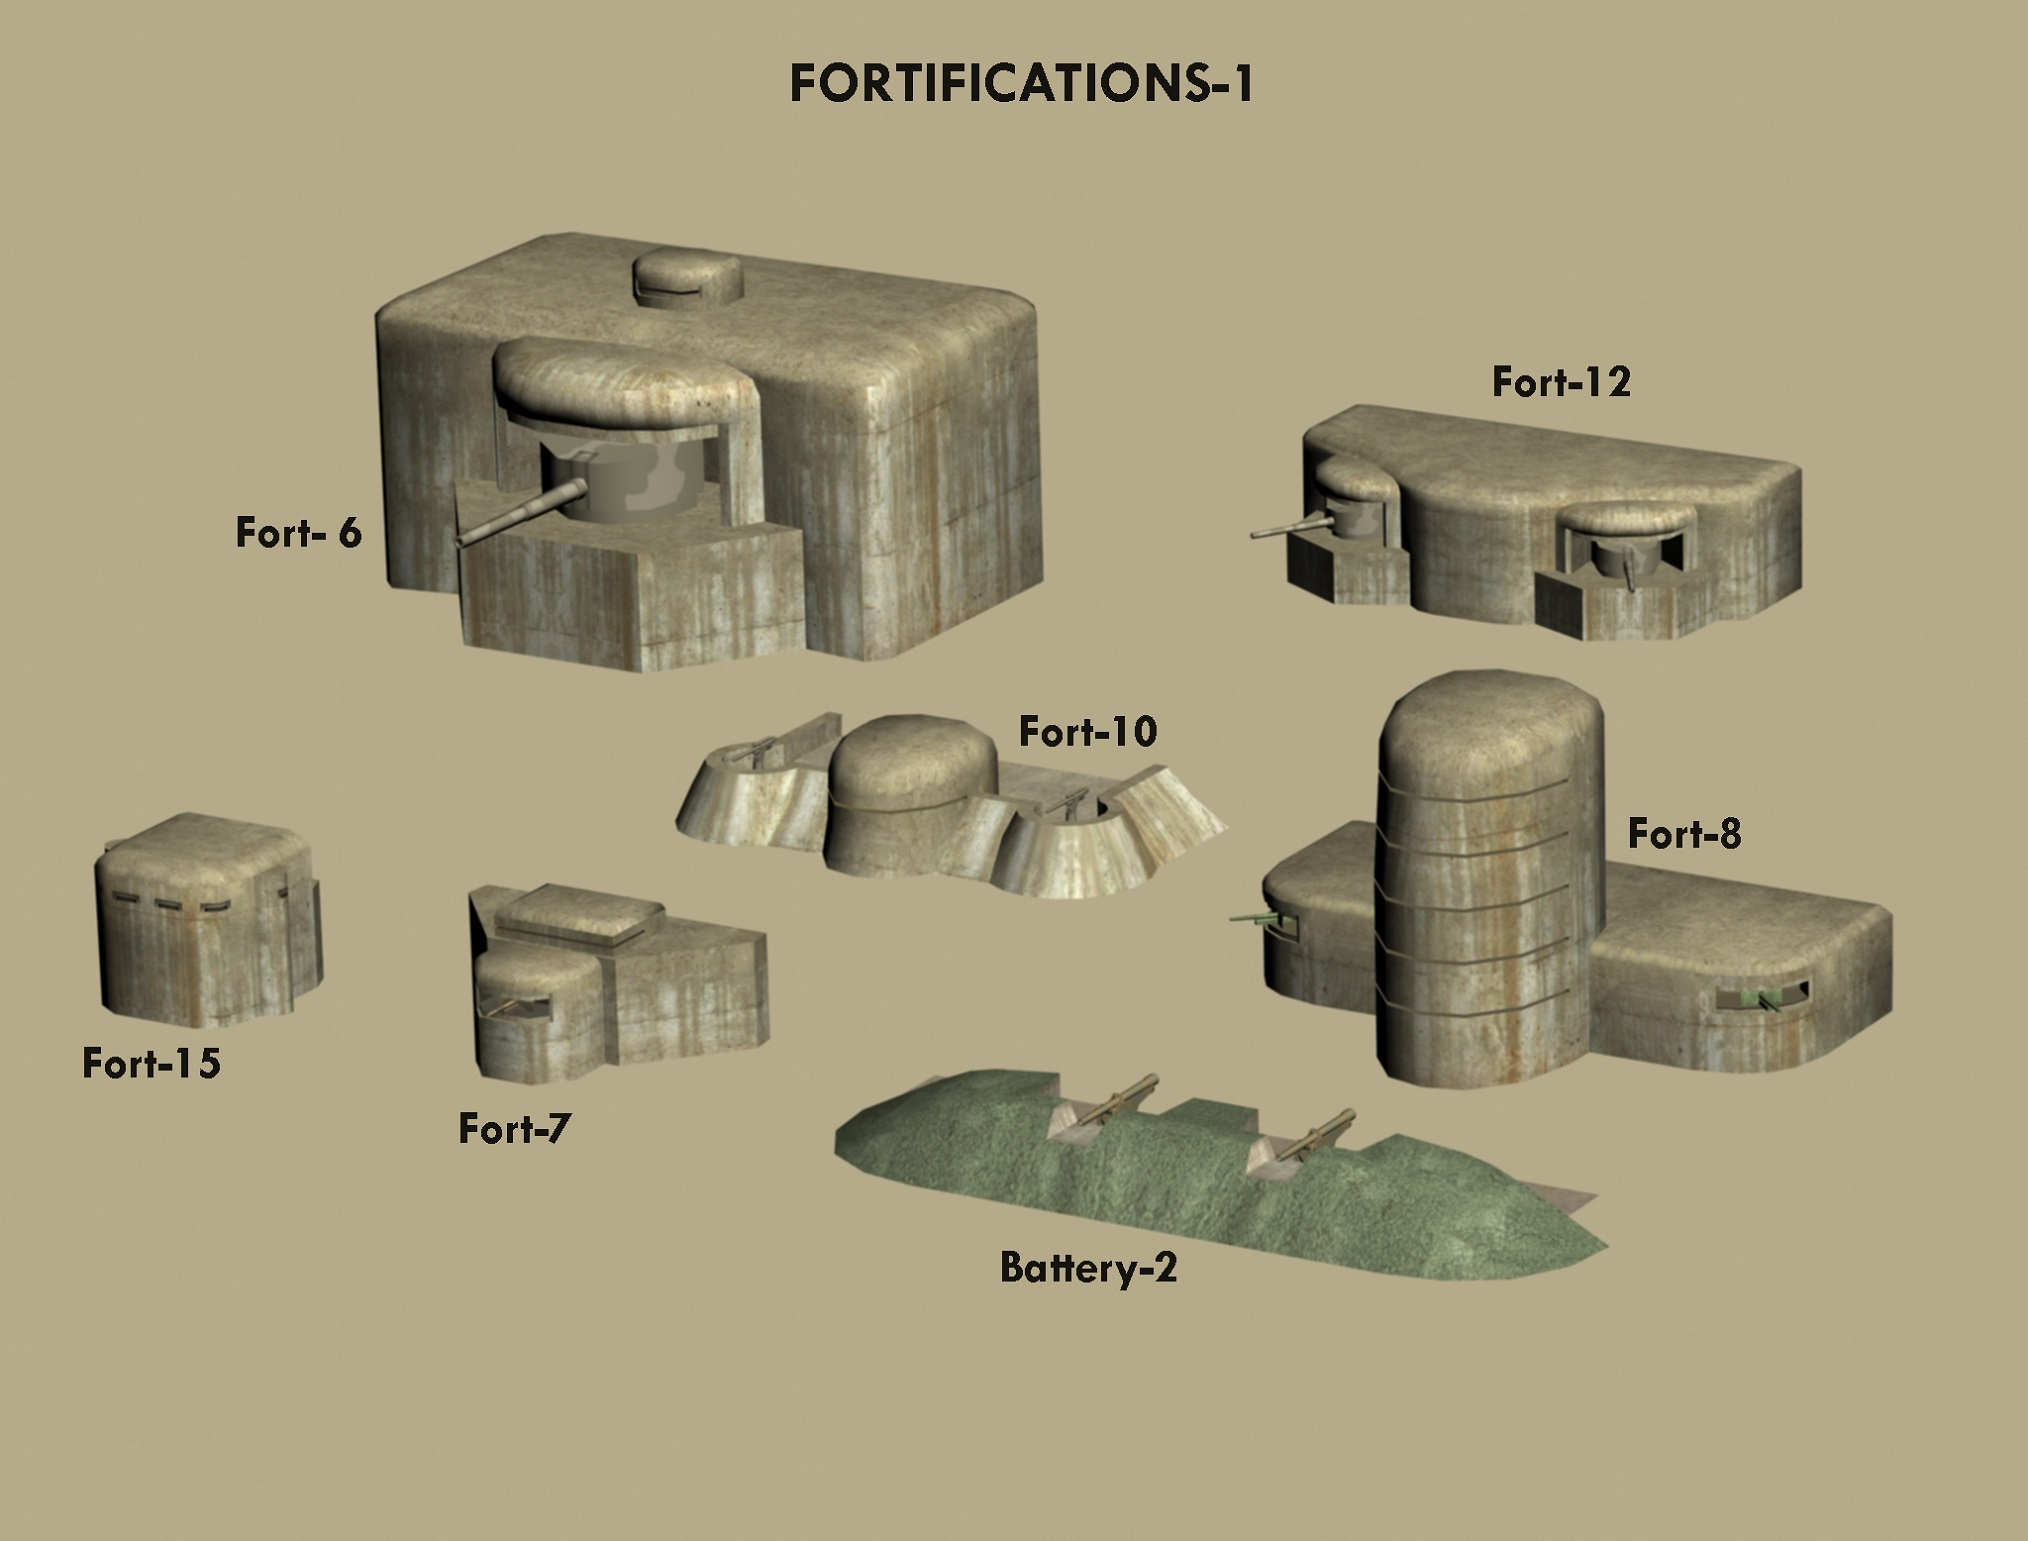 forts-1reduced.jpg